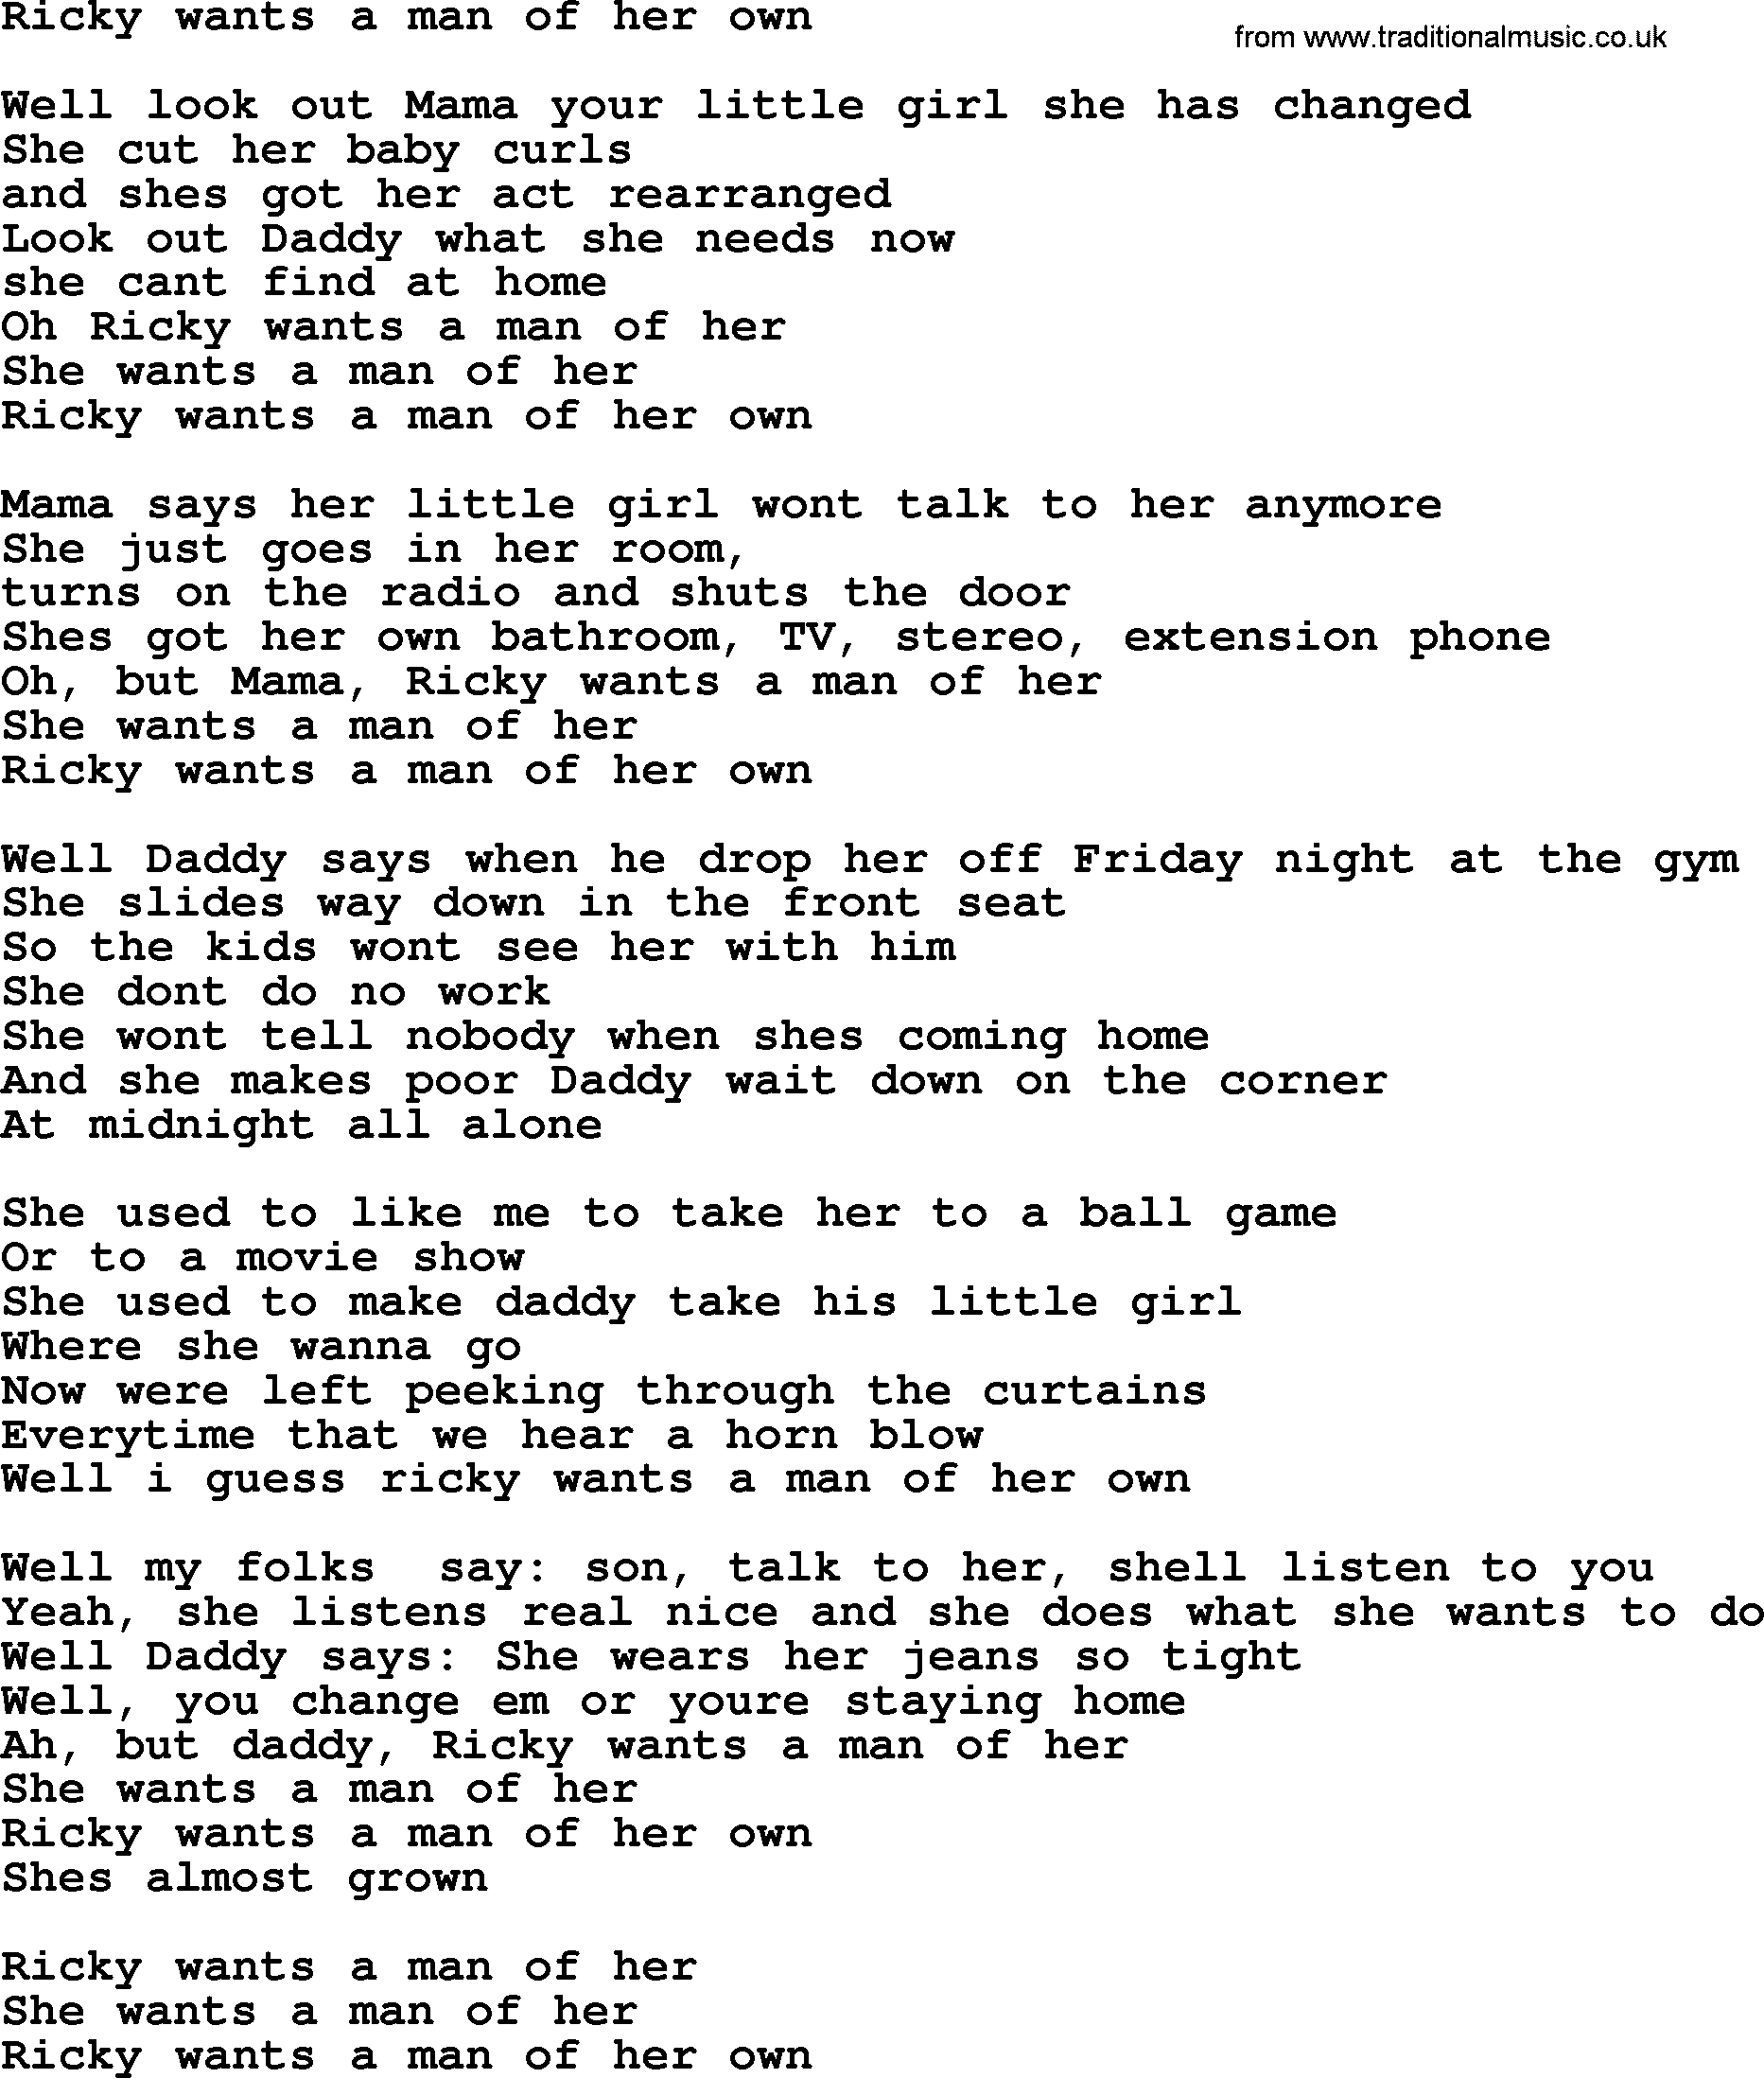 Bruce Springsteen song: Ricky Wants A Man Of Her Own, lyrics